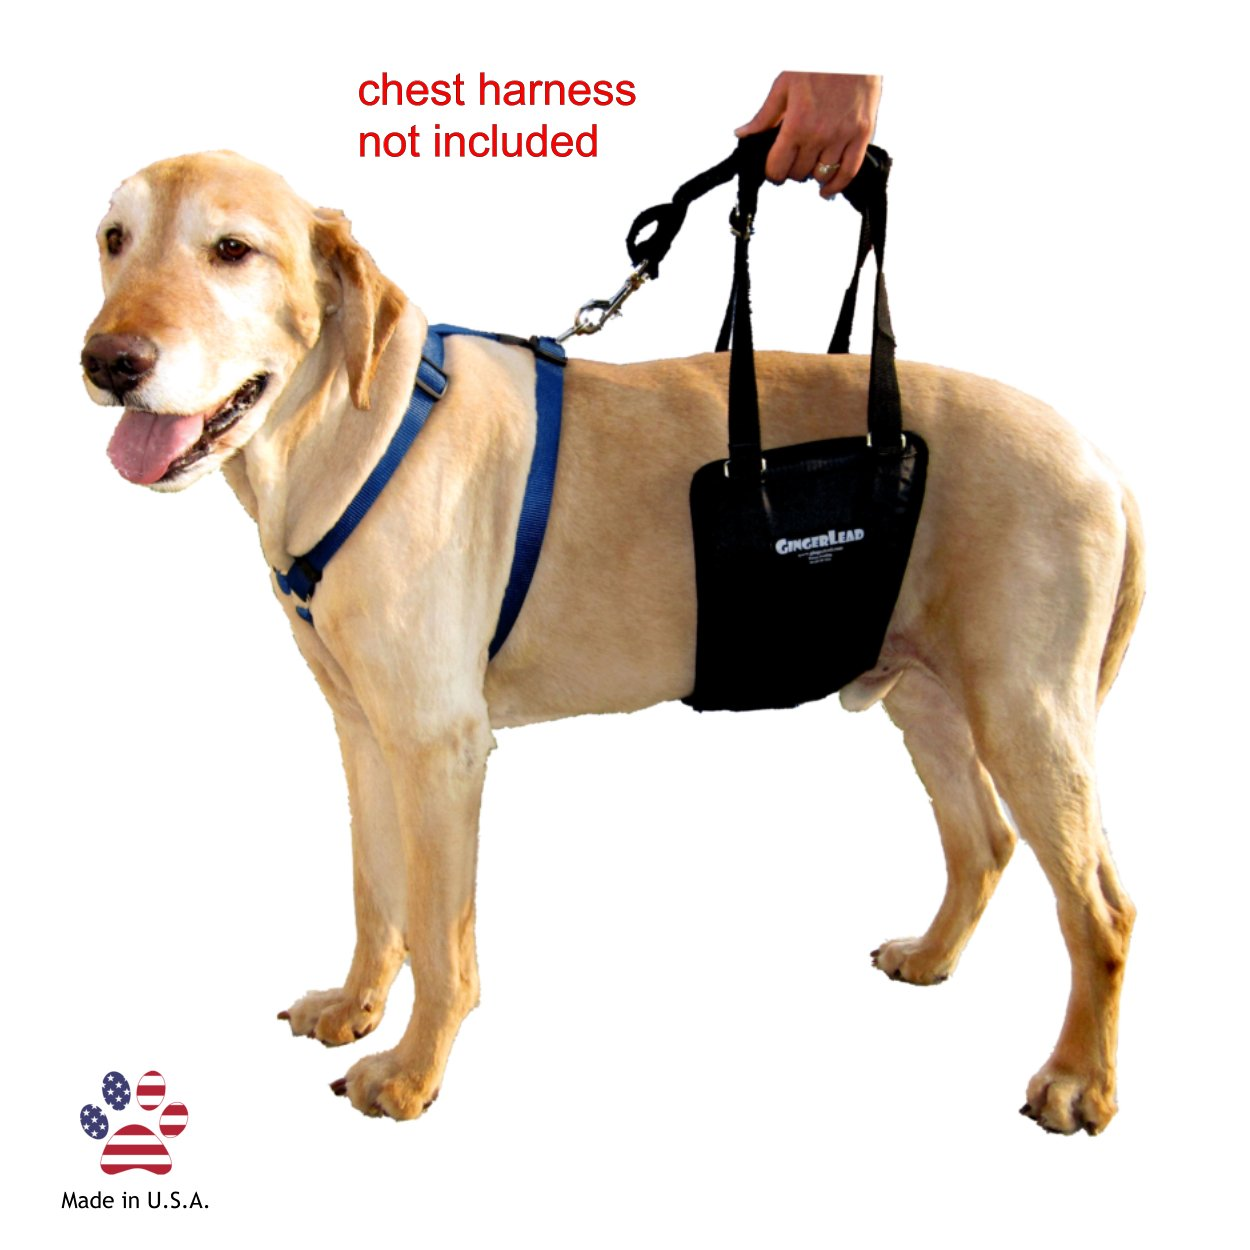 Amazon.com : GingerLead Dog Support & Rehabilitation Harness Medium/Large  Dog Sling with Stay on Straps; Helps Older, Disabled or Injured Dogs Walk.